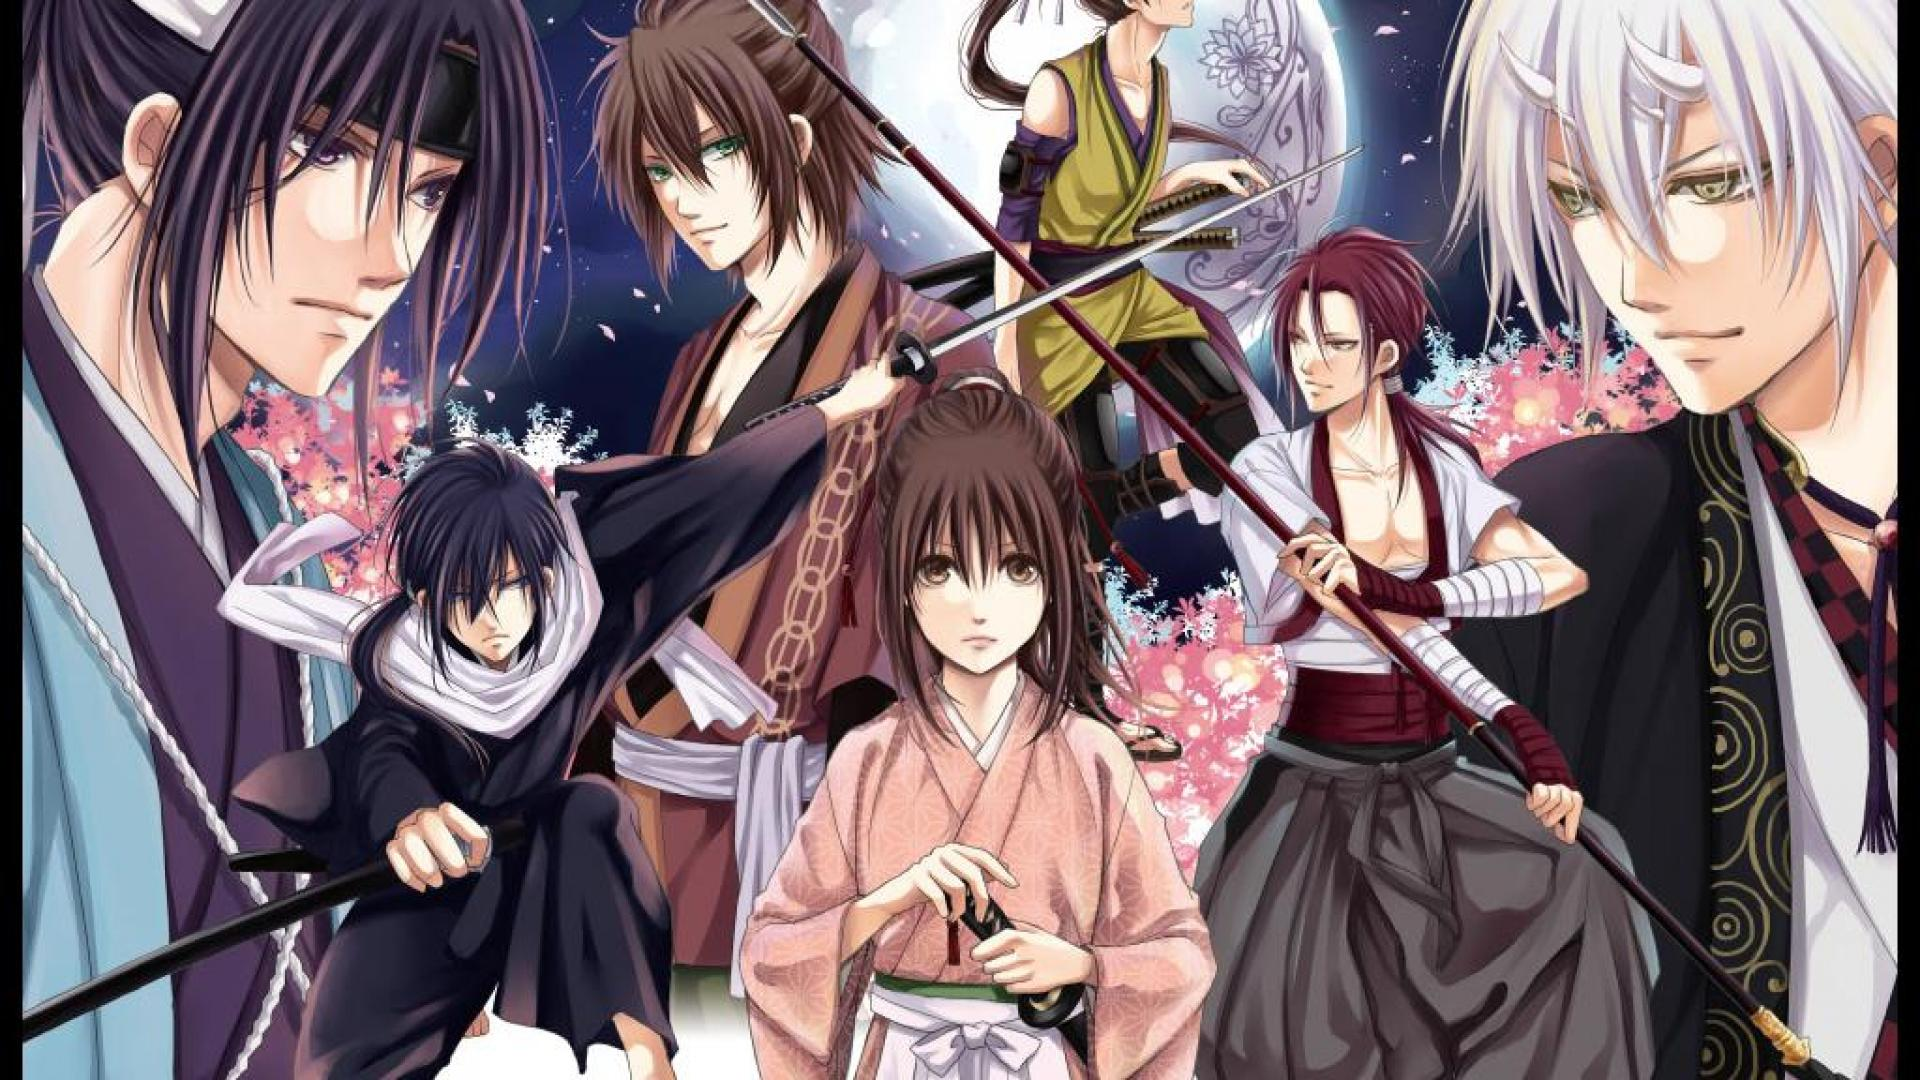 HQ Hakuouki Shinsengumi Kitan Wallpapers | File 316.04Kb